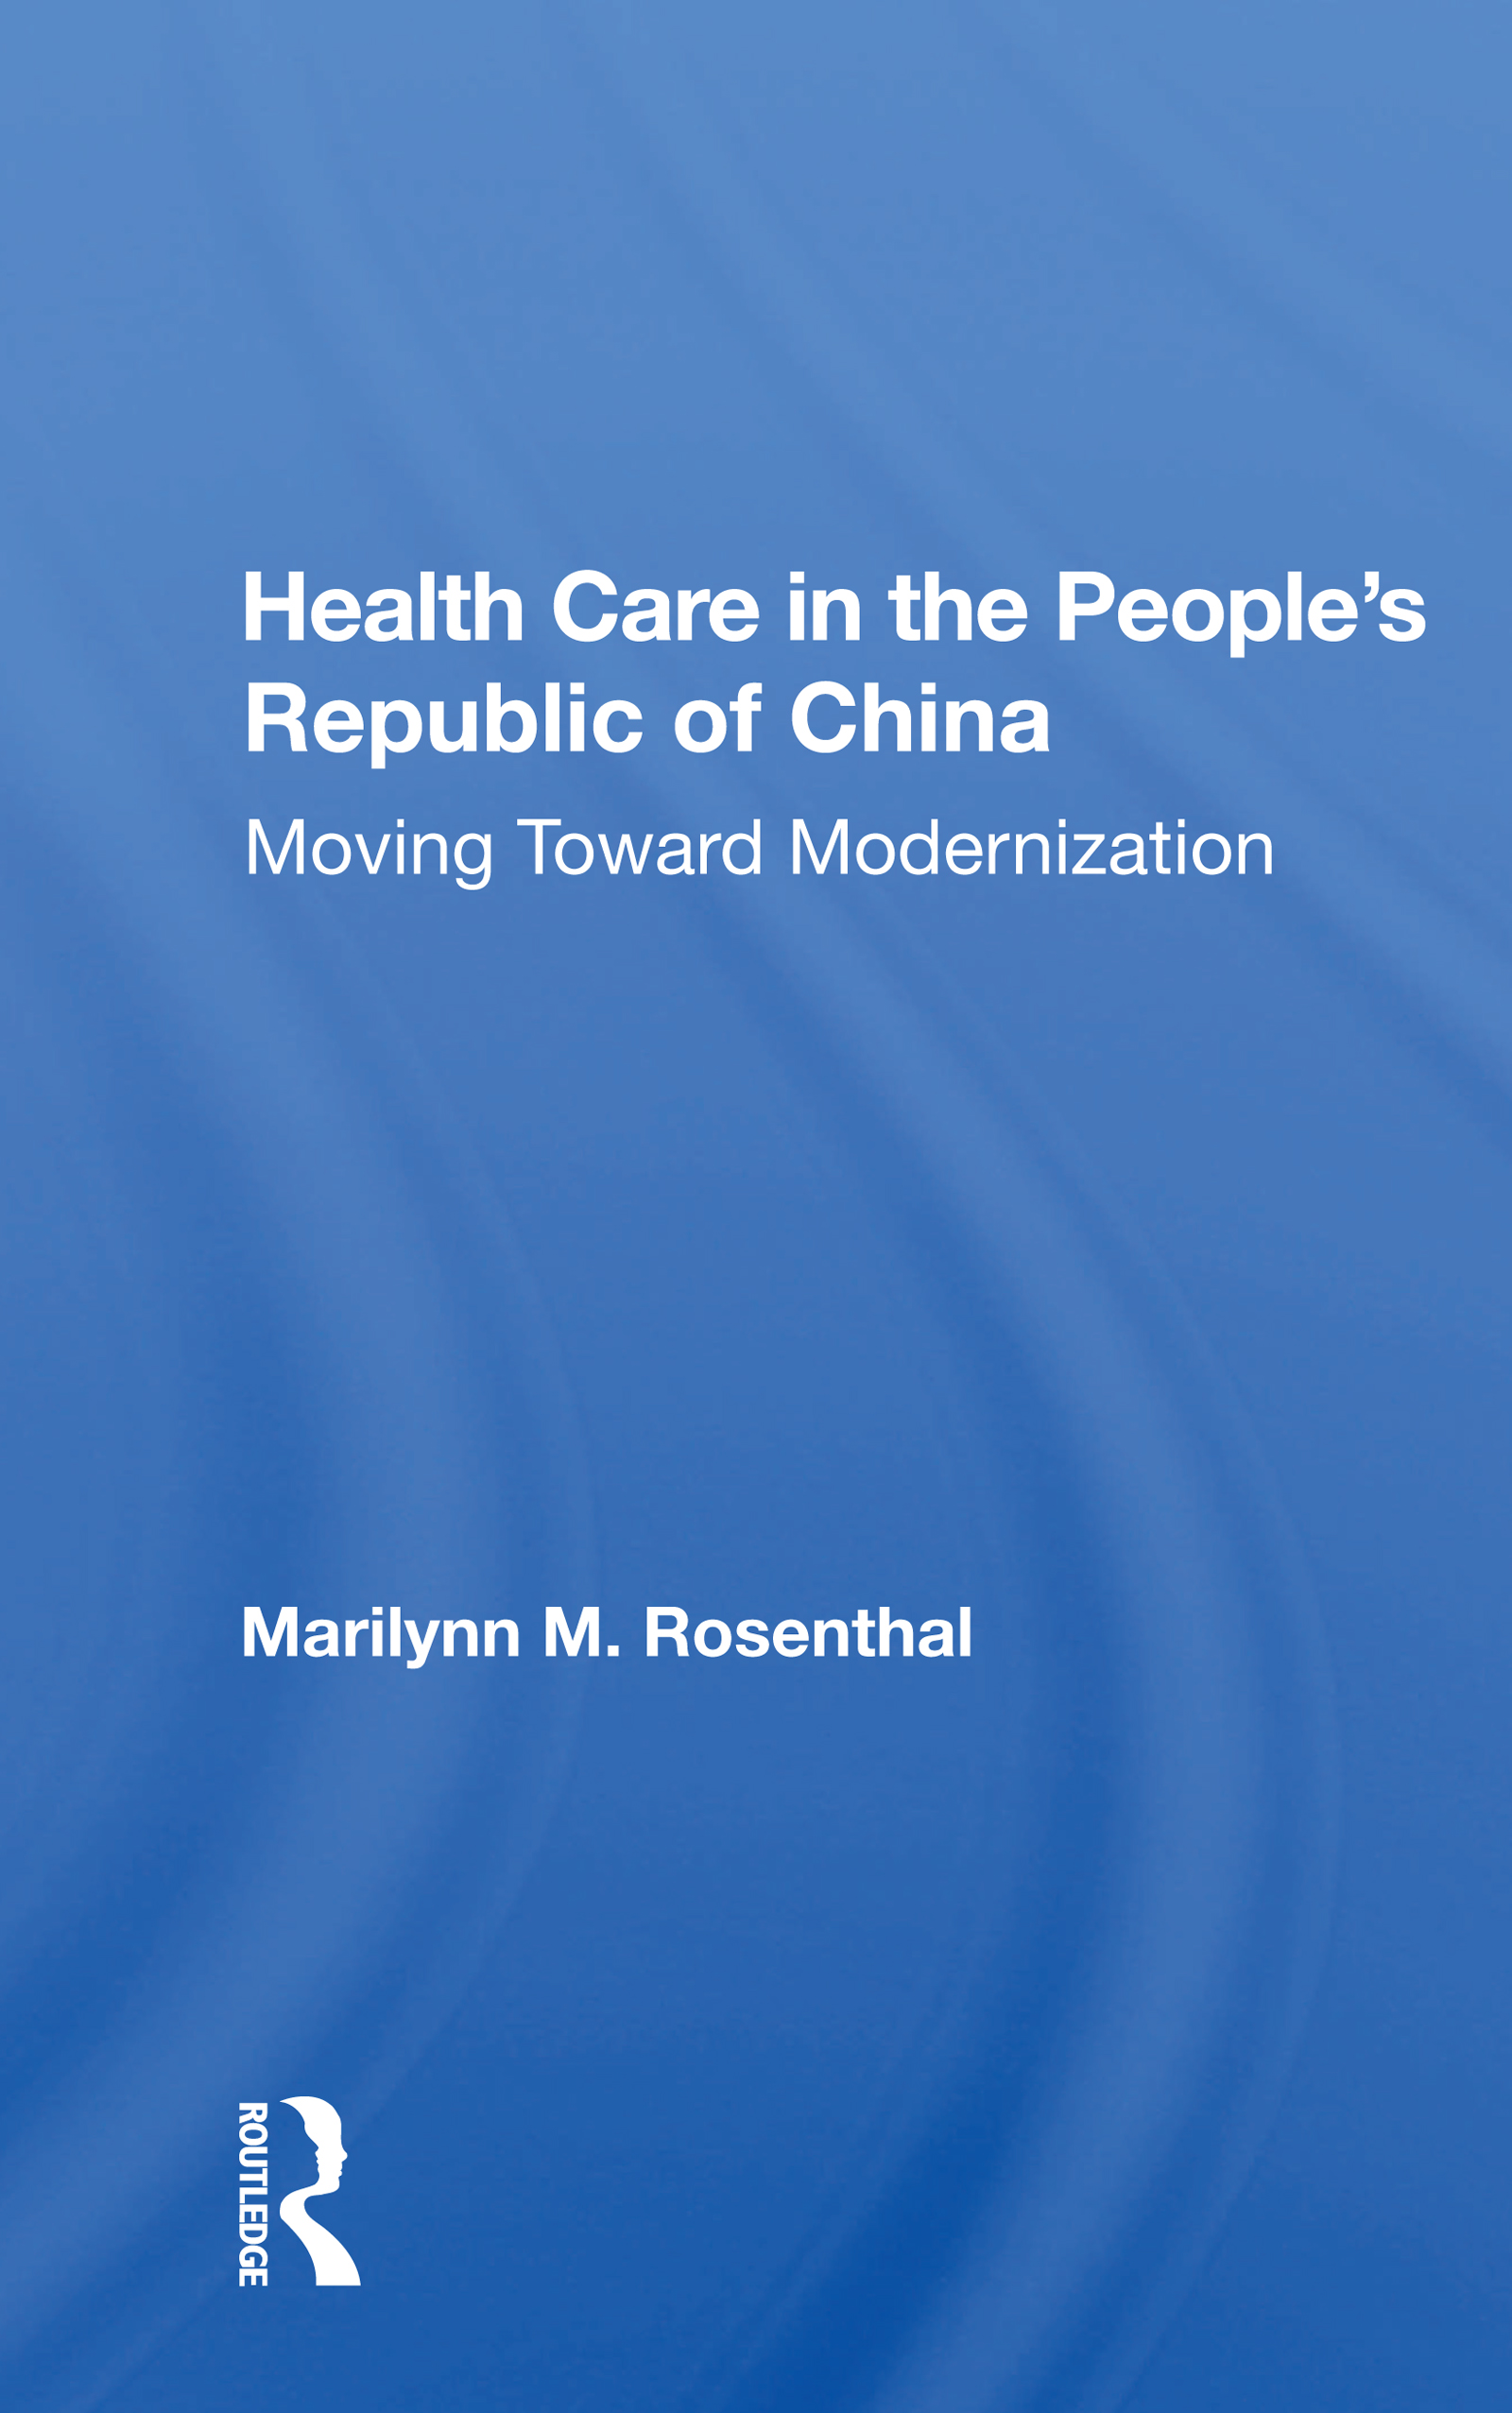 Health Care in the People's Republic of China